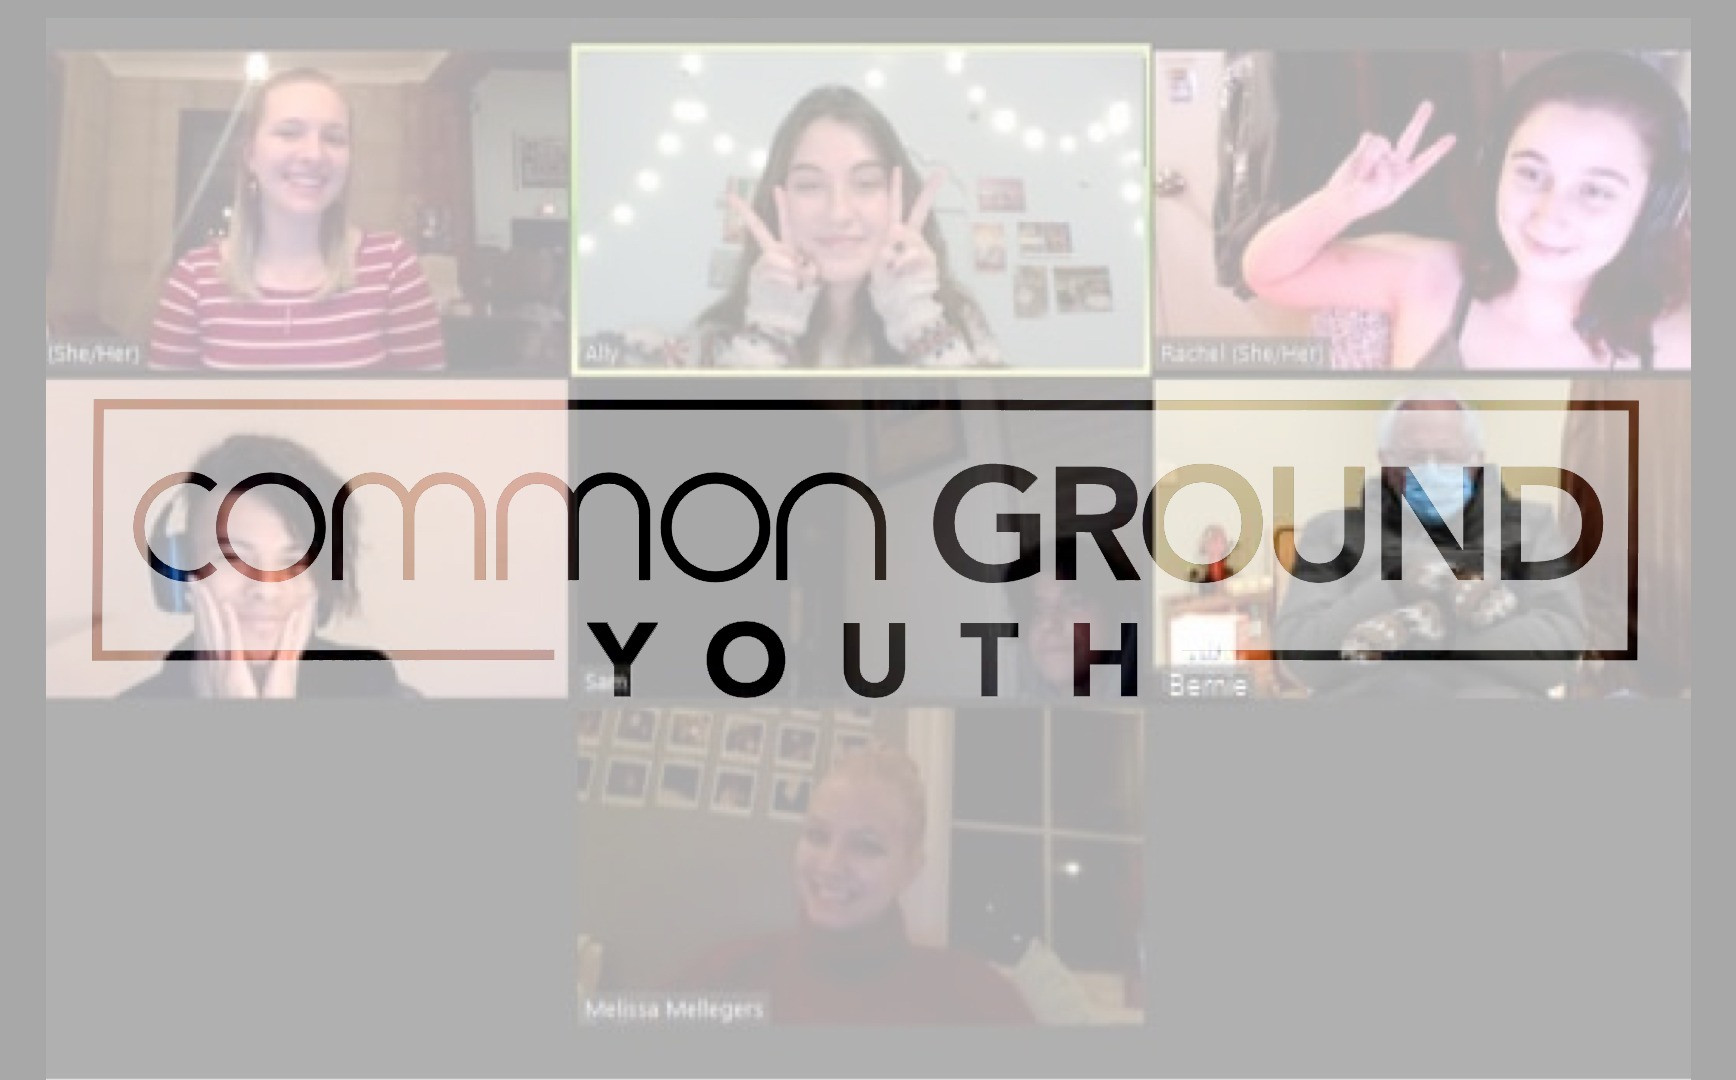 Common Ground Youth